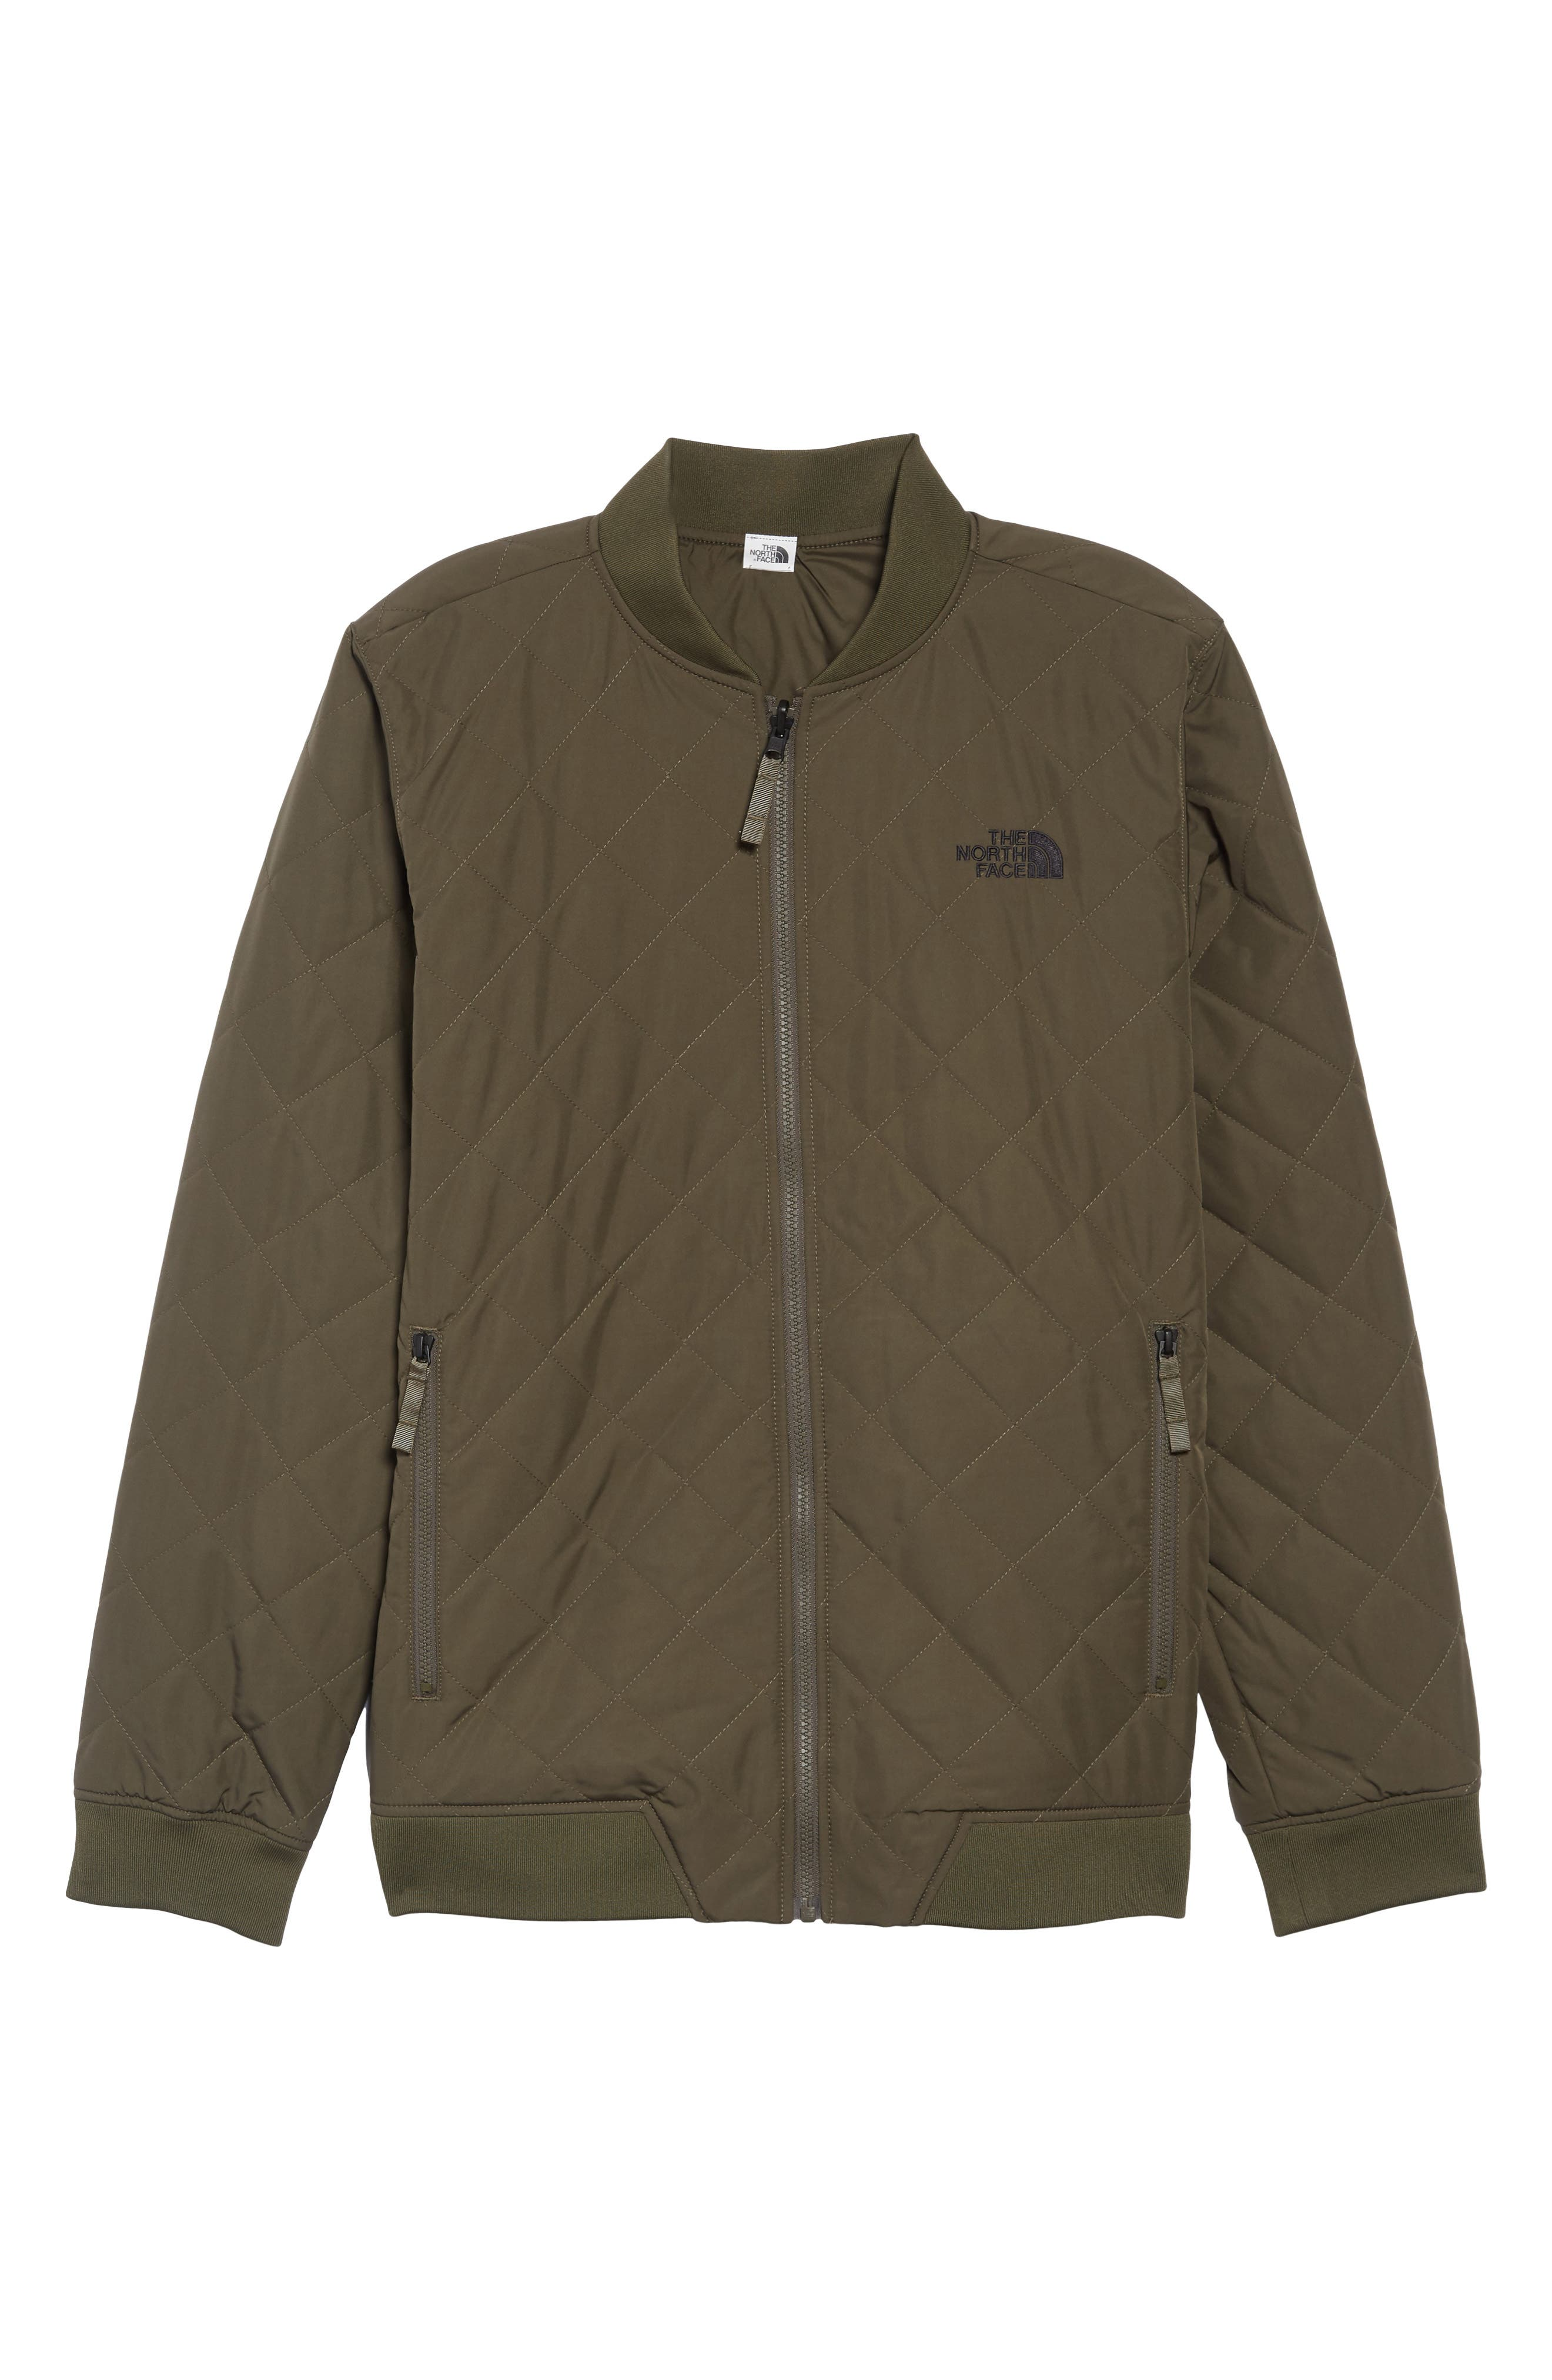 THE NORTH FACE,                             Jester Reversible Bomber Jacket,                             Alternate thumbnail 7, color,                             NEW TAUPE GREEN